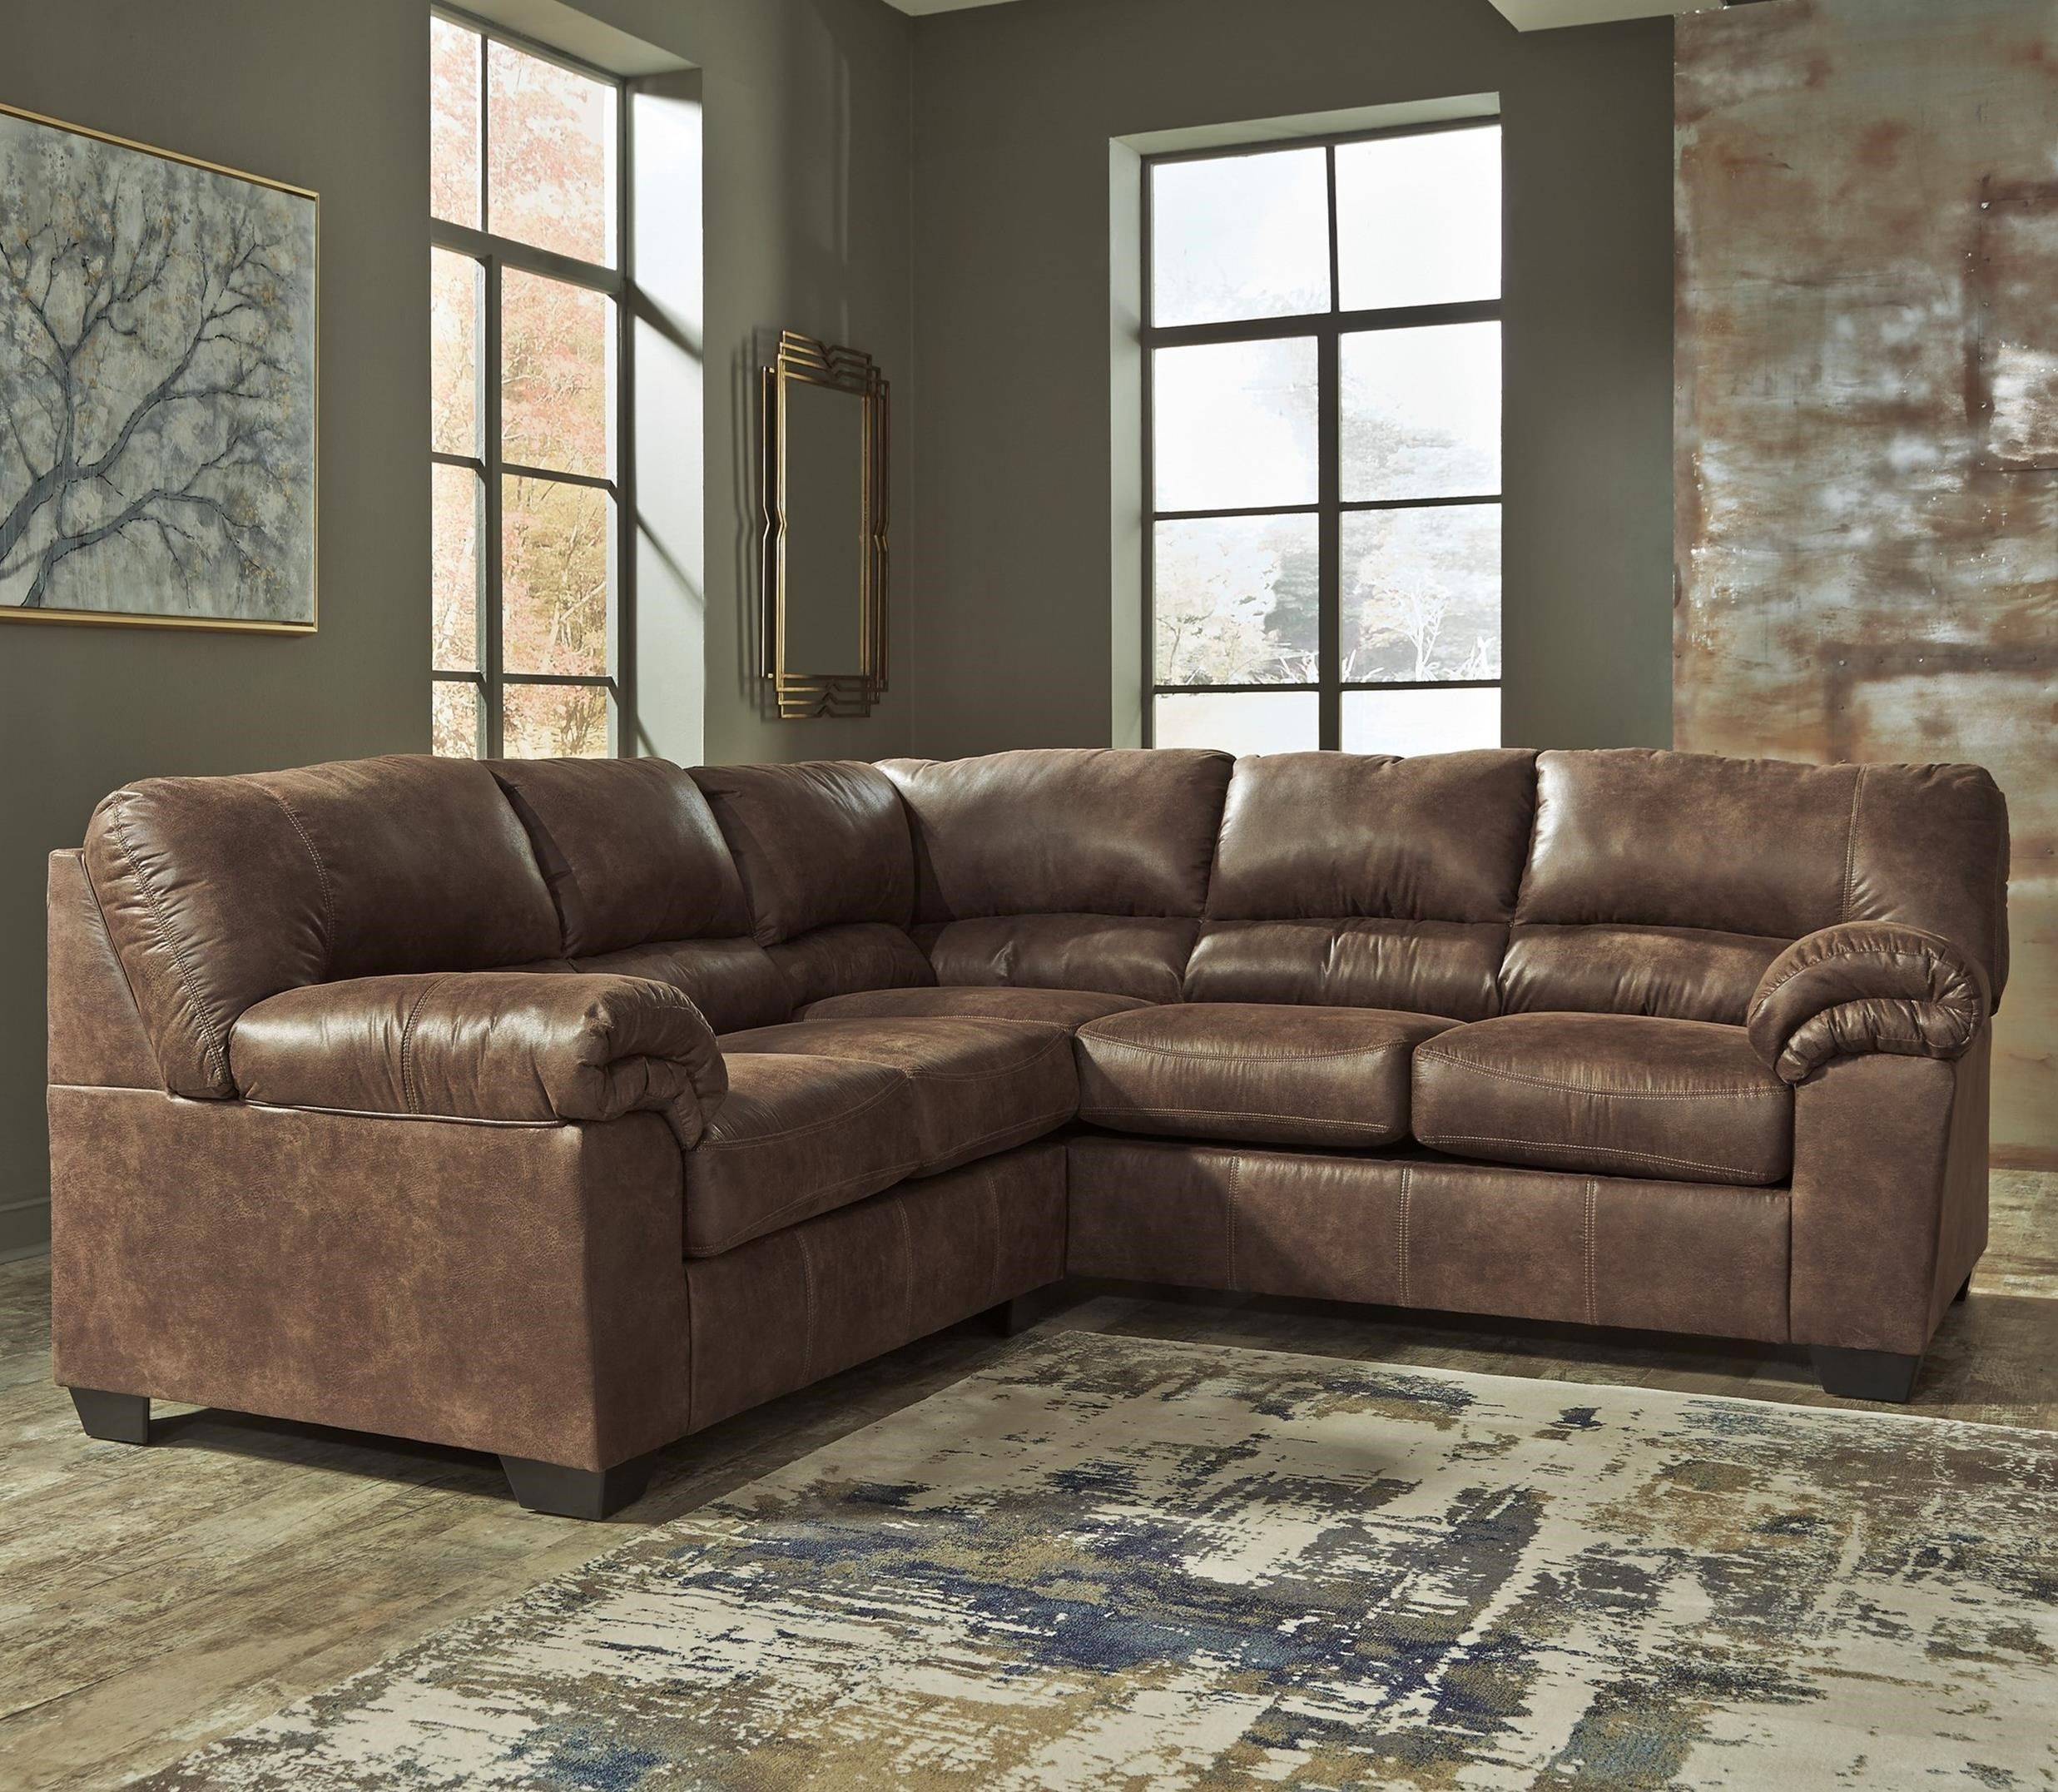 Sofa Mart Sale Bladen 2 Piece Faux Leather Sectional By Signature Design By